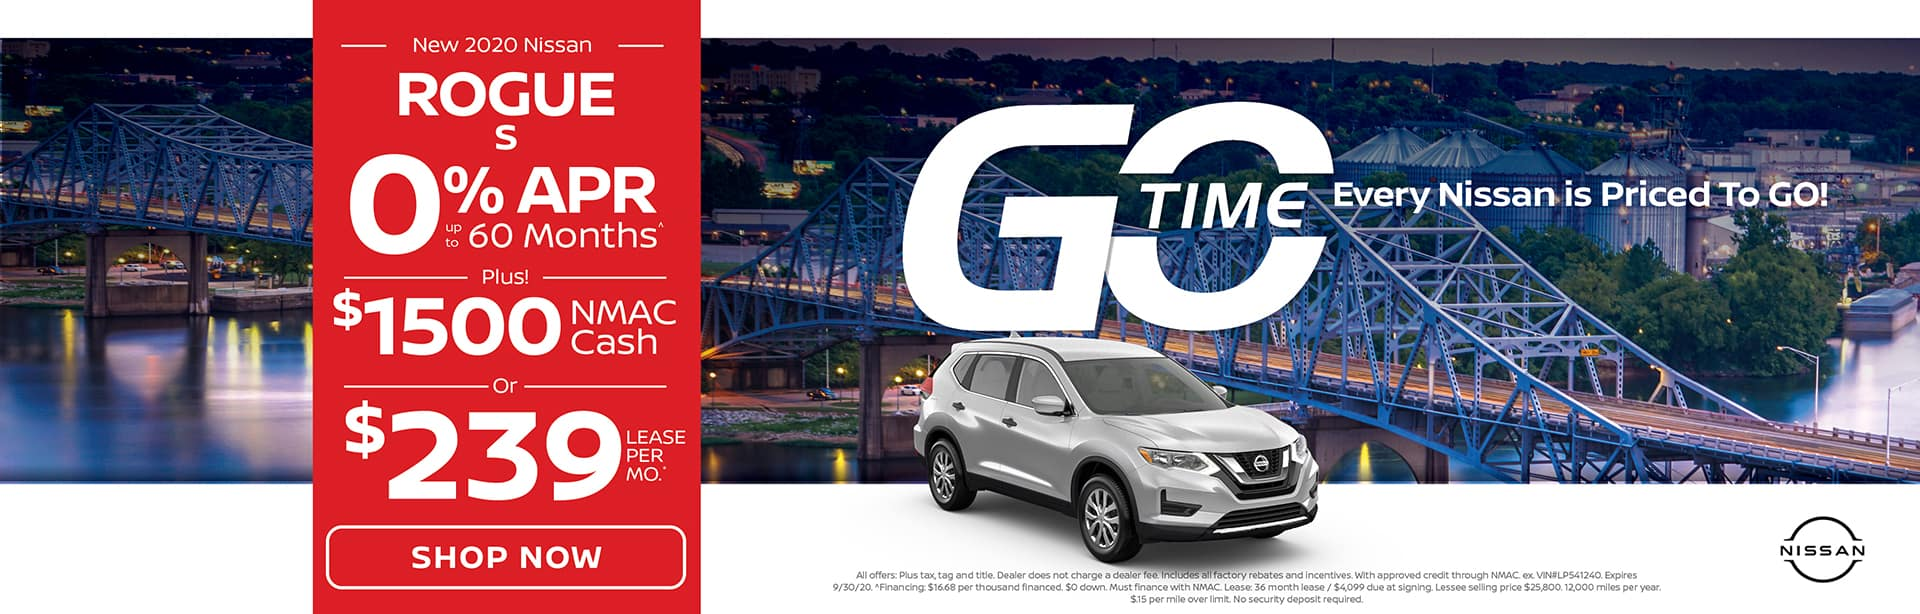 GO TIME - New 2020 Nissan Rogue